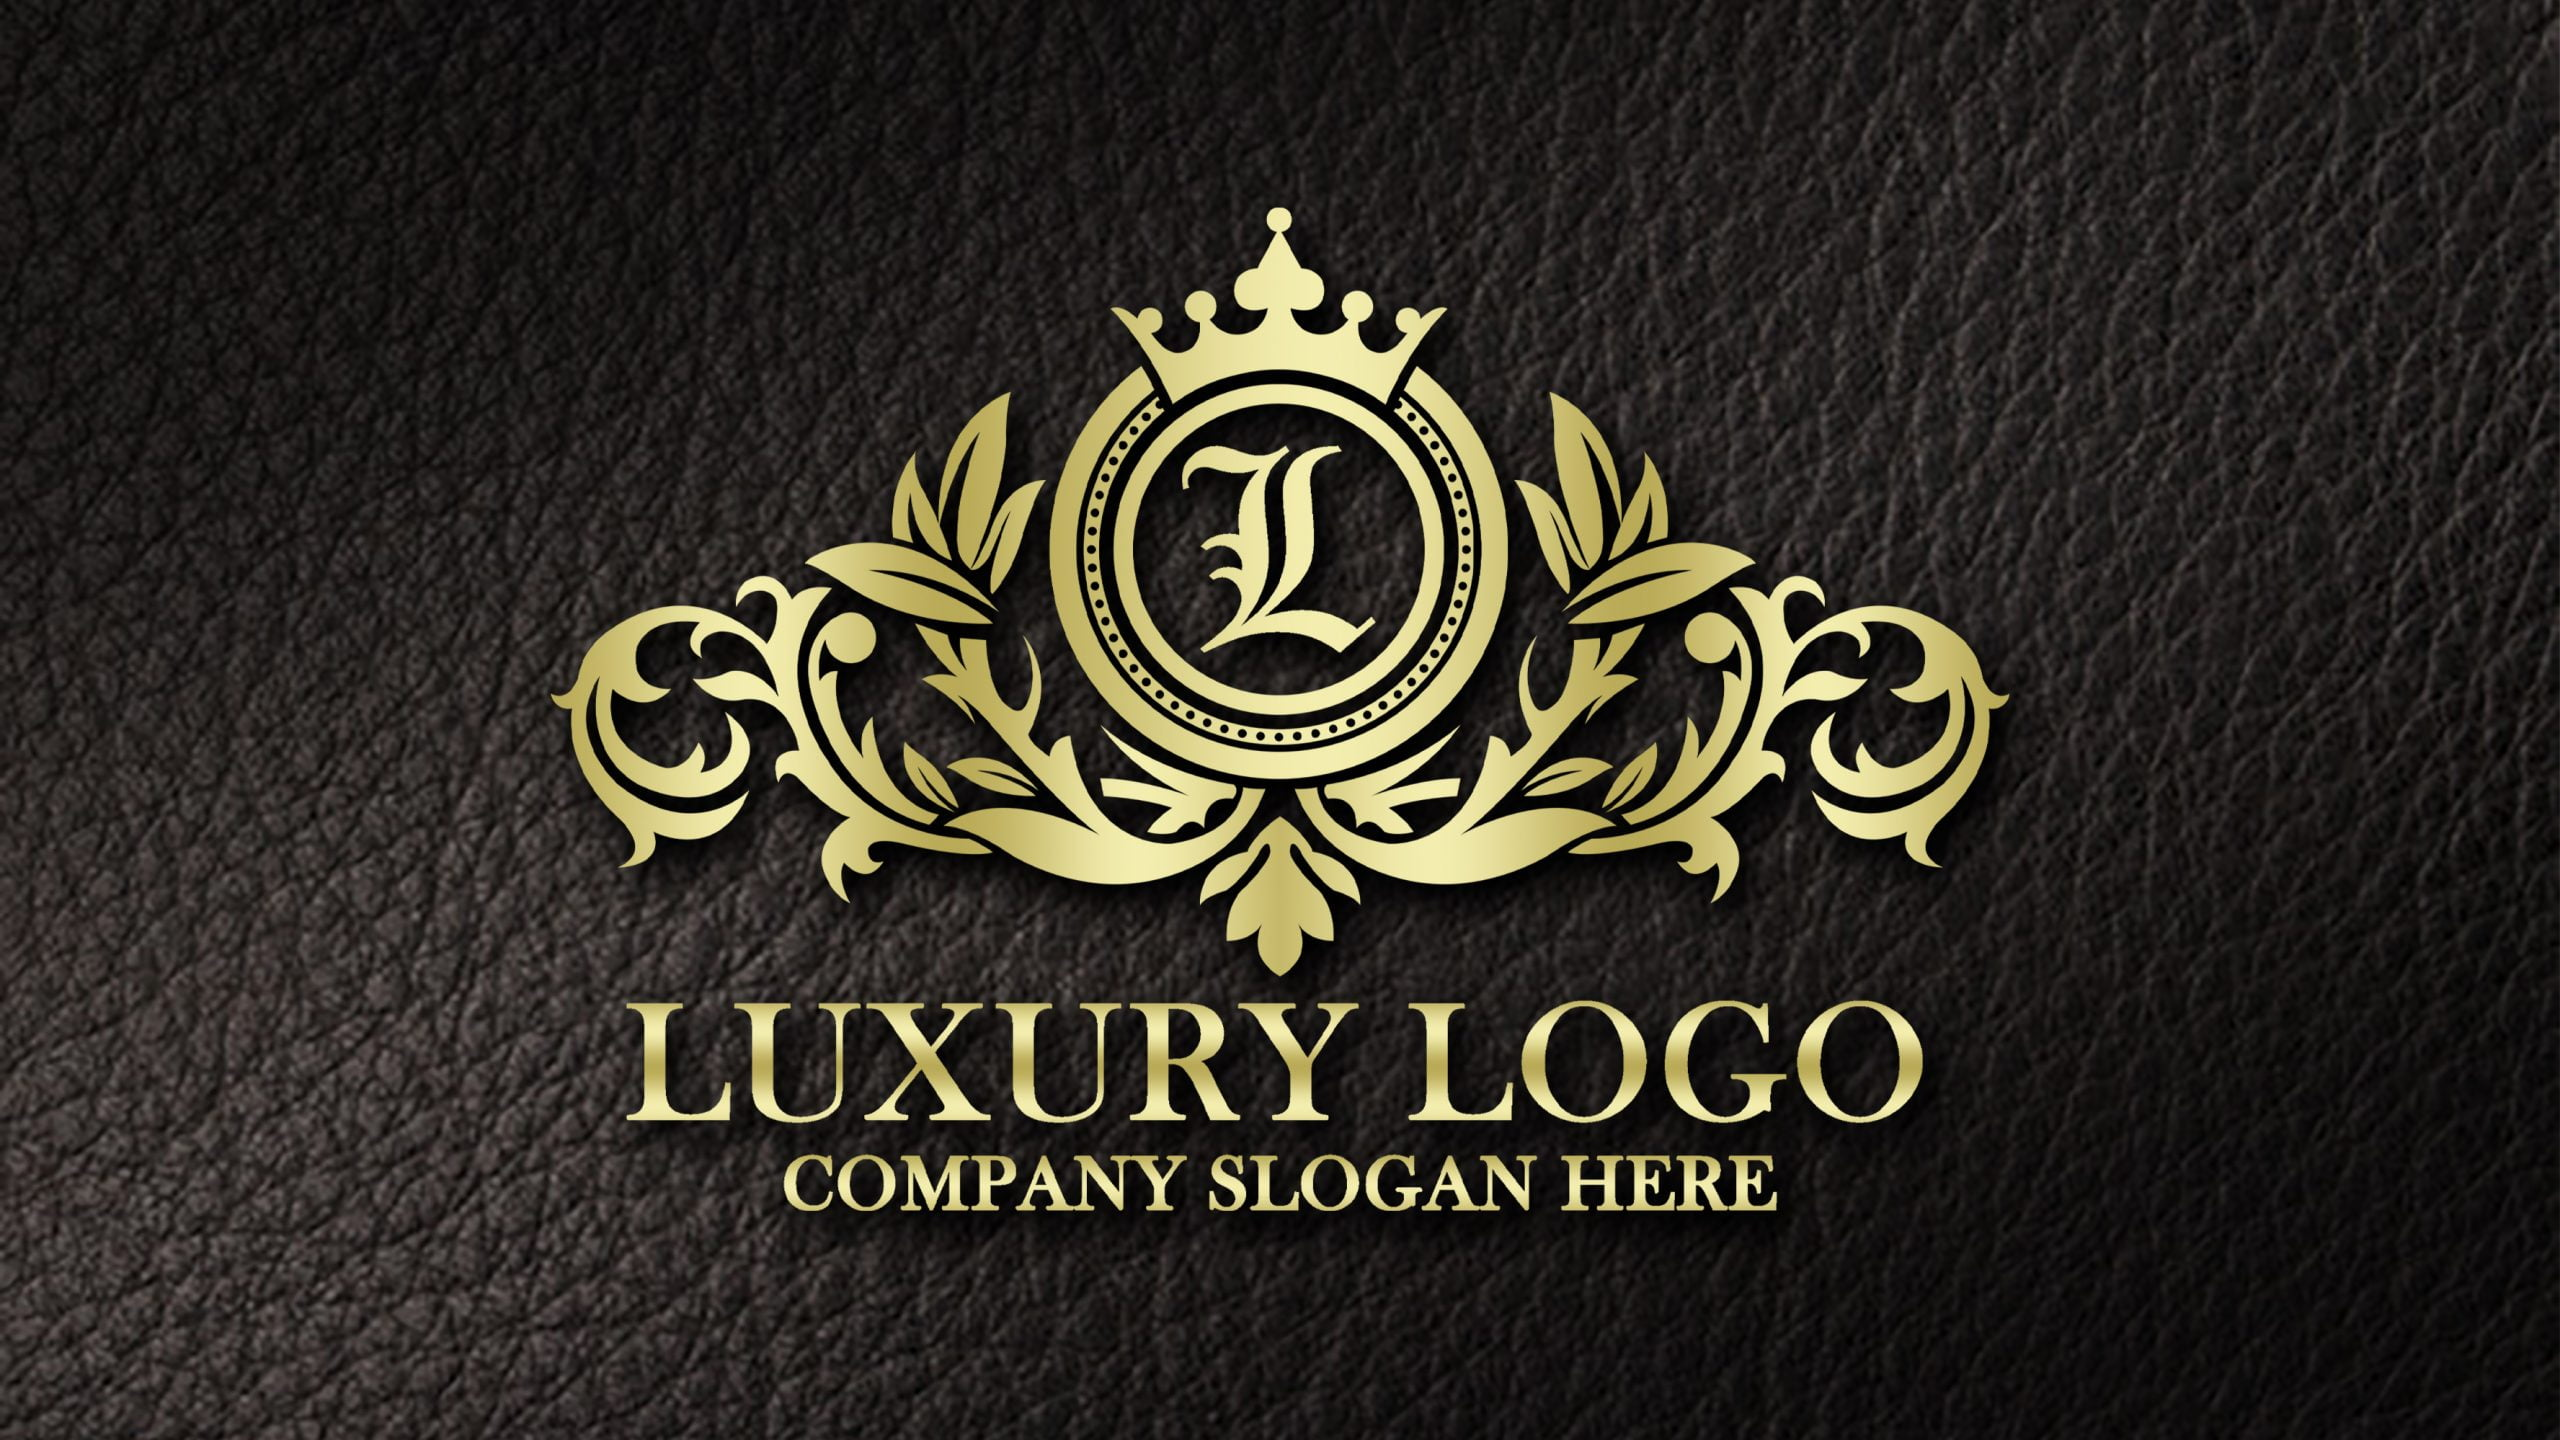 Professional Luxury Logo Design on realistic leather